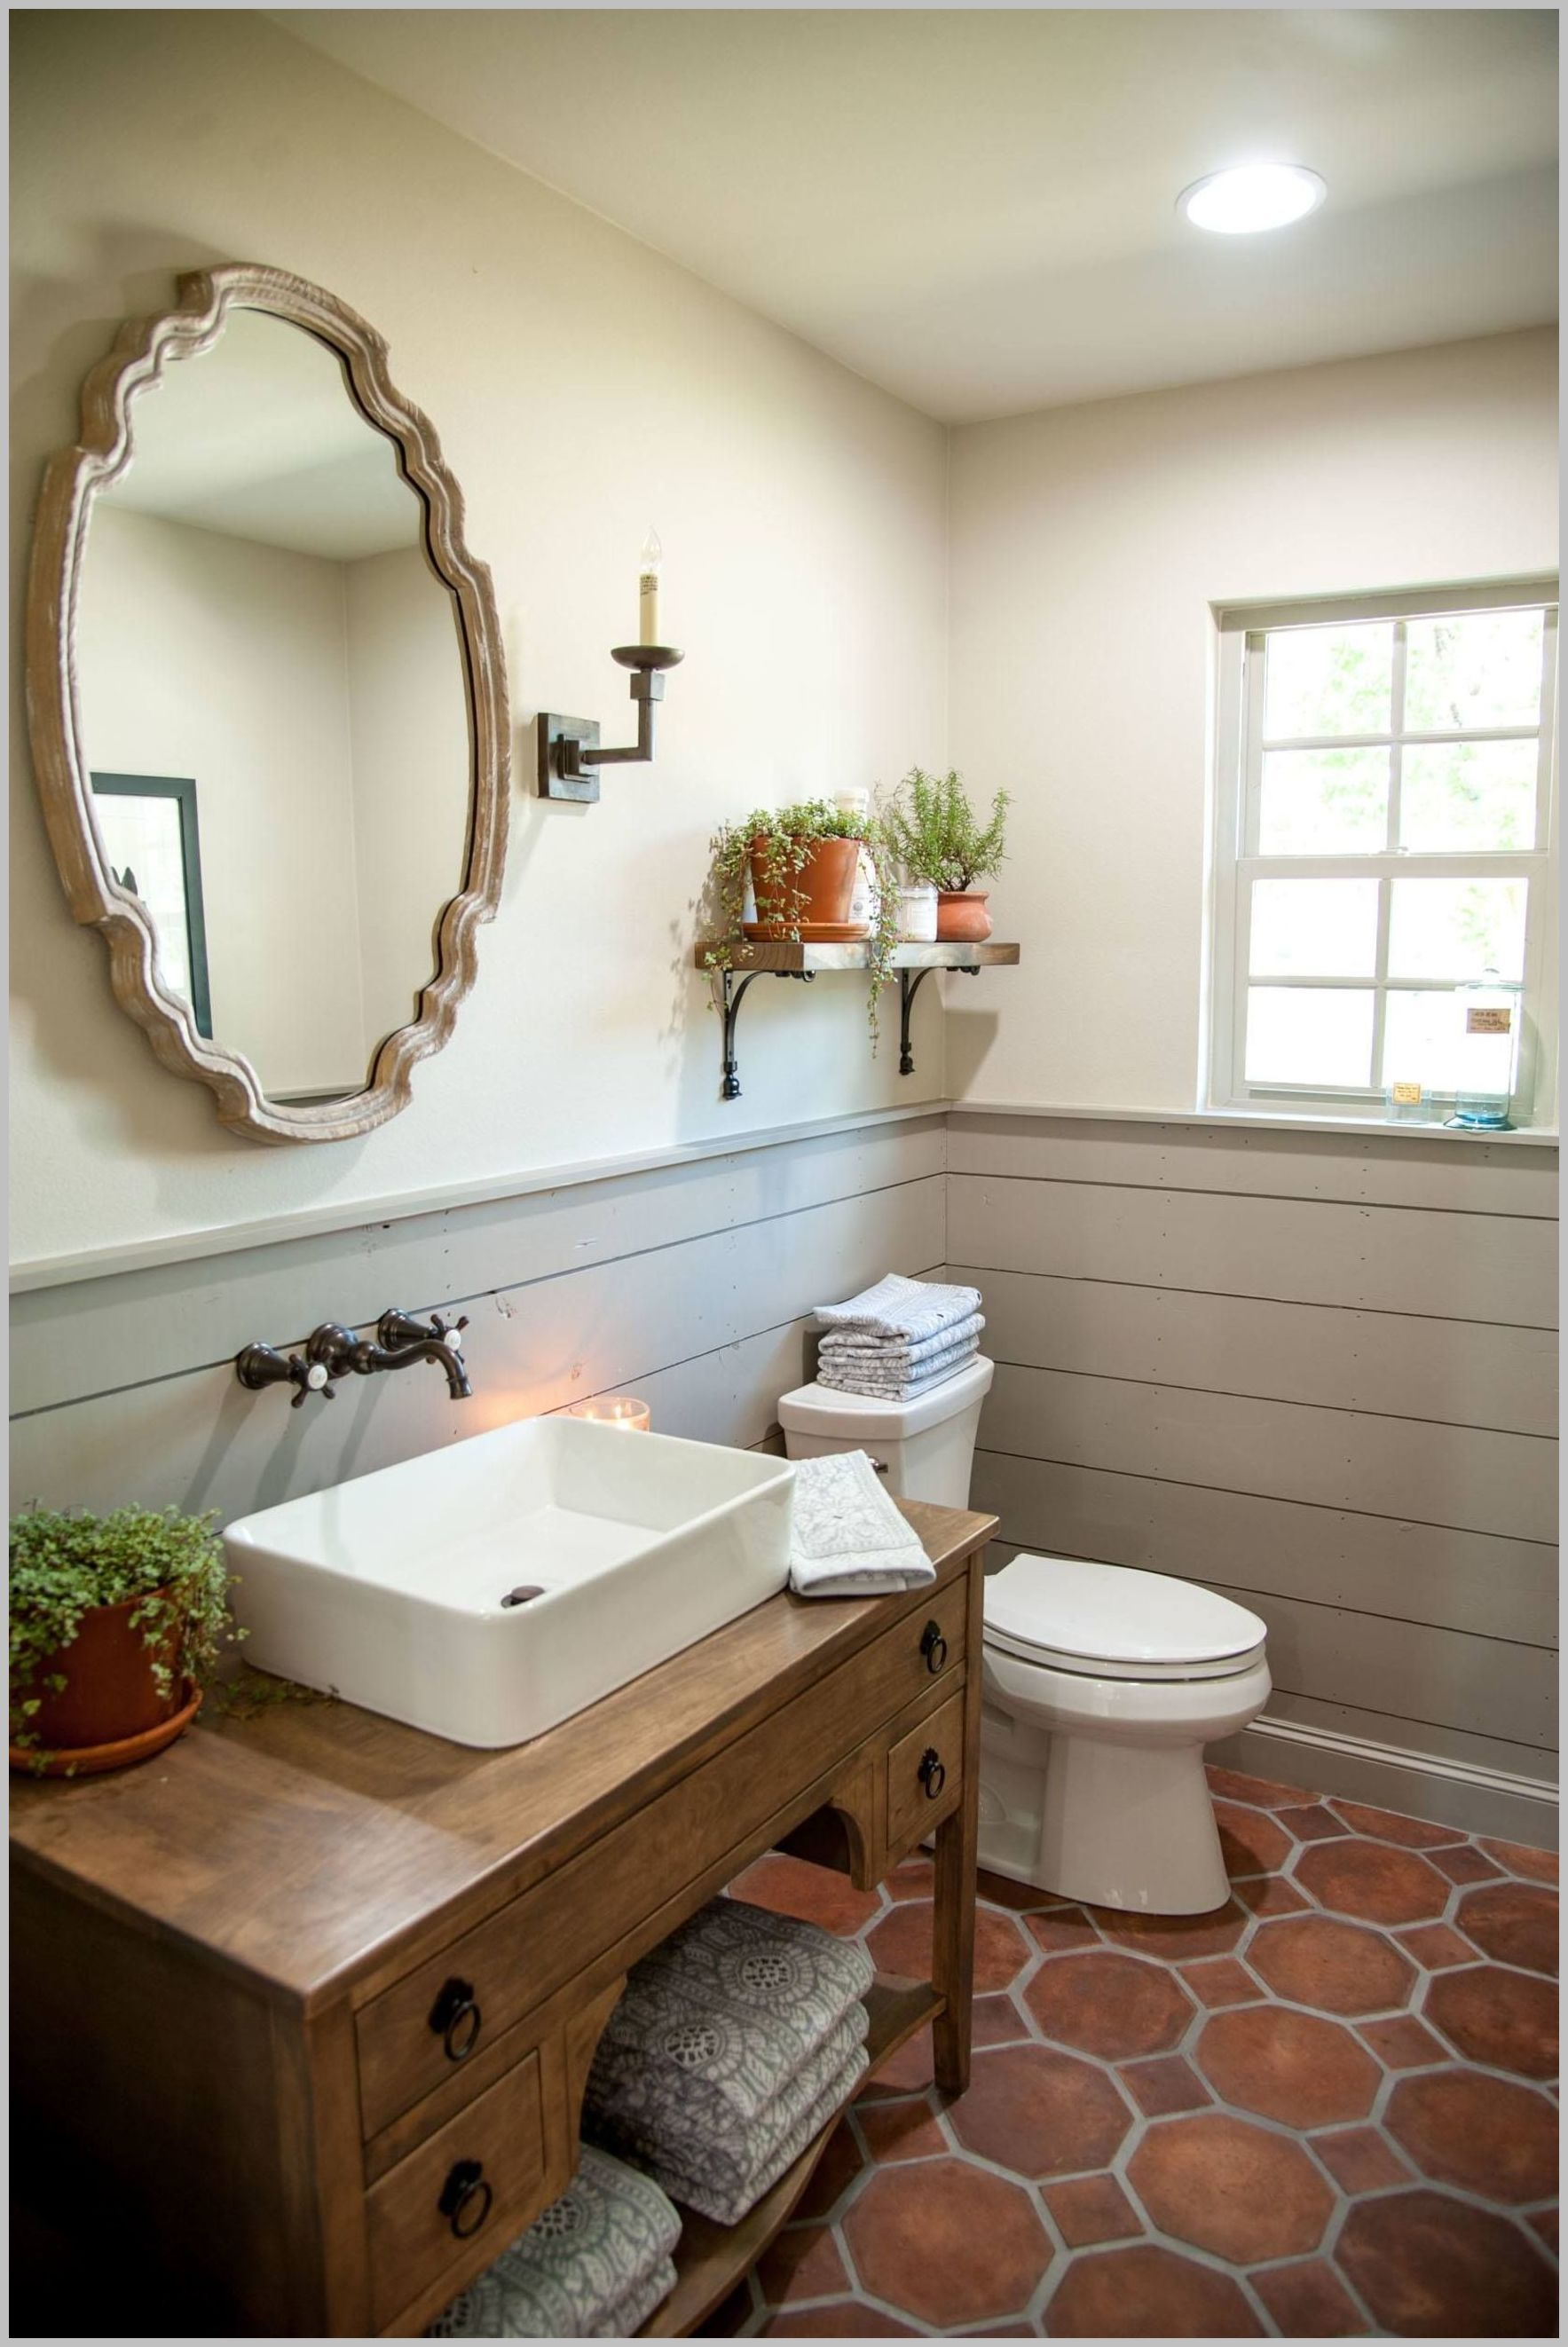 [ Bathroom Decorating Ideas ] How To Clean Your Bathroom